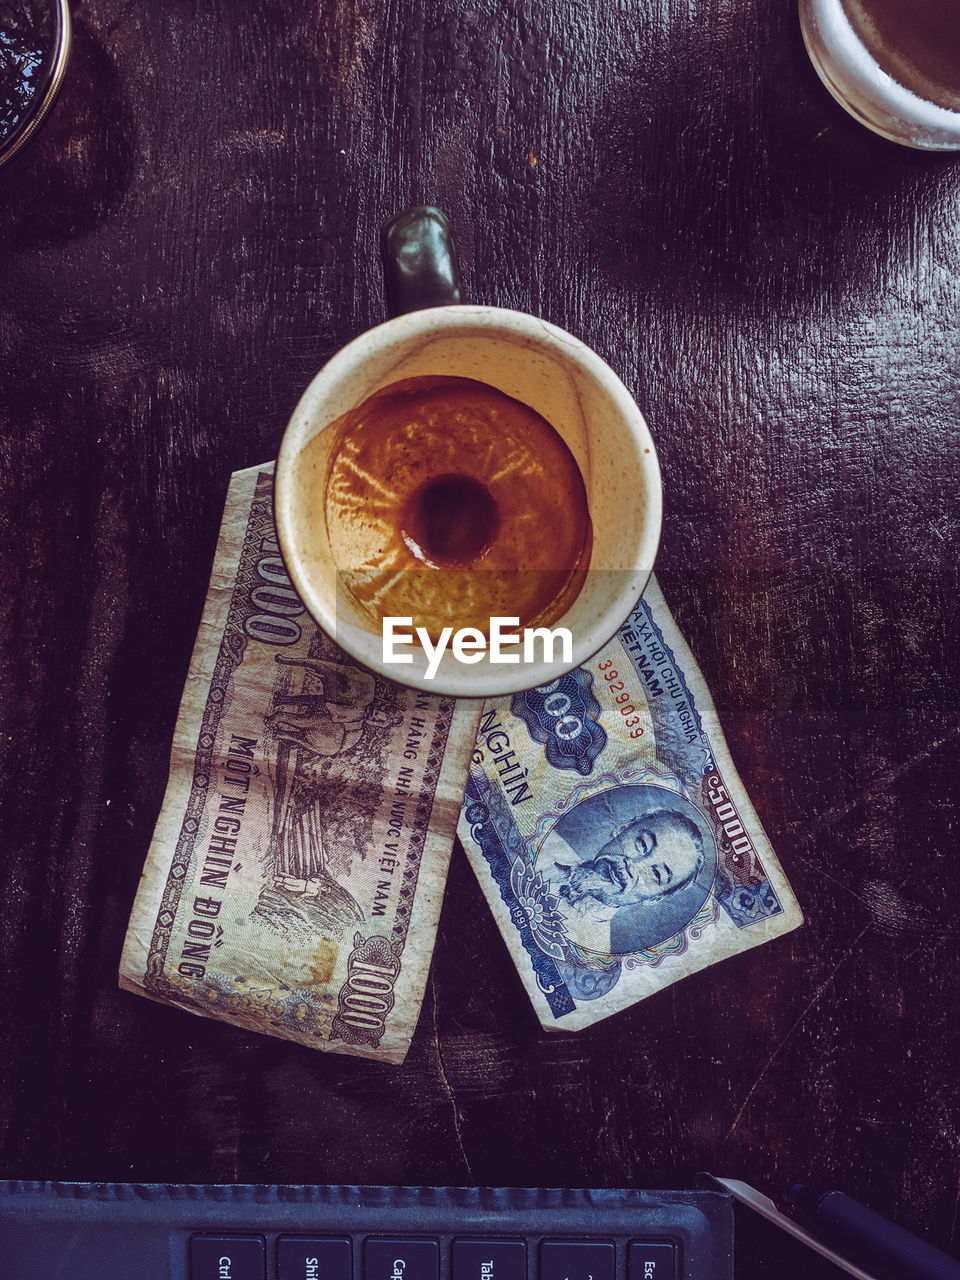 food and drink, table, indoors, still life, cup, directly above, paper currency, coffee, mug, currency, drink, high angle view, no people, freshness, finance, coffee cup, close-up, refreshment, coffee - drink, text, crockery